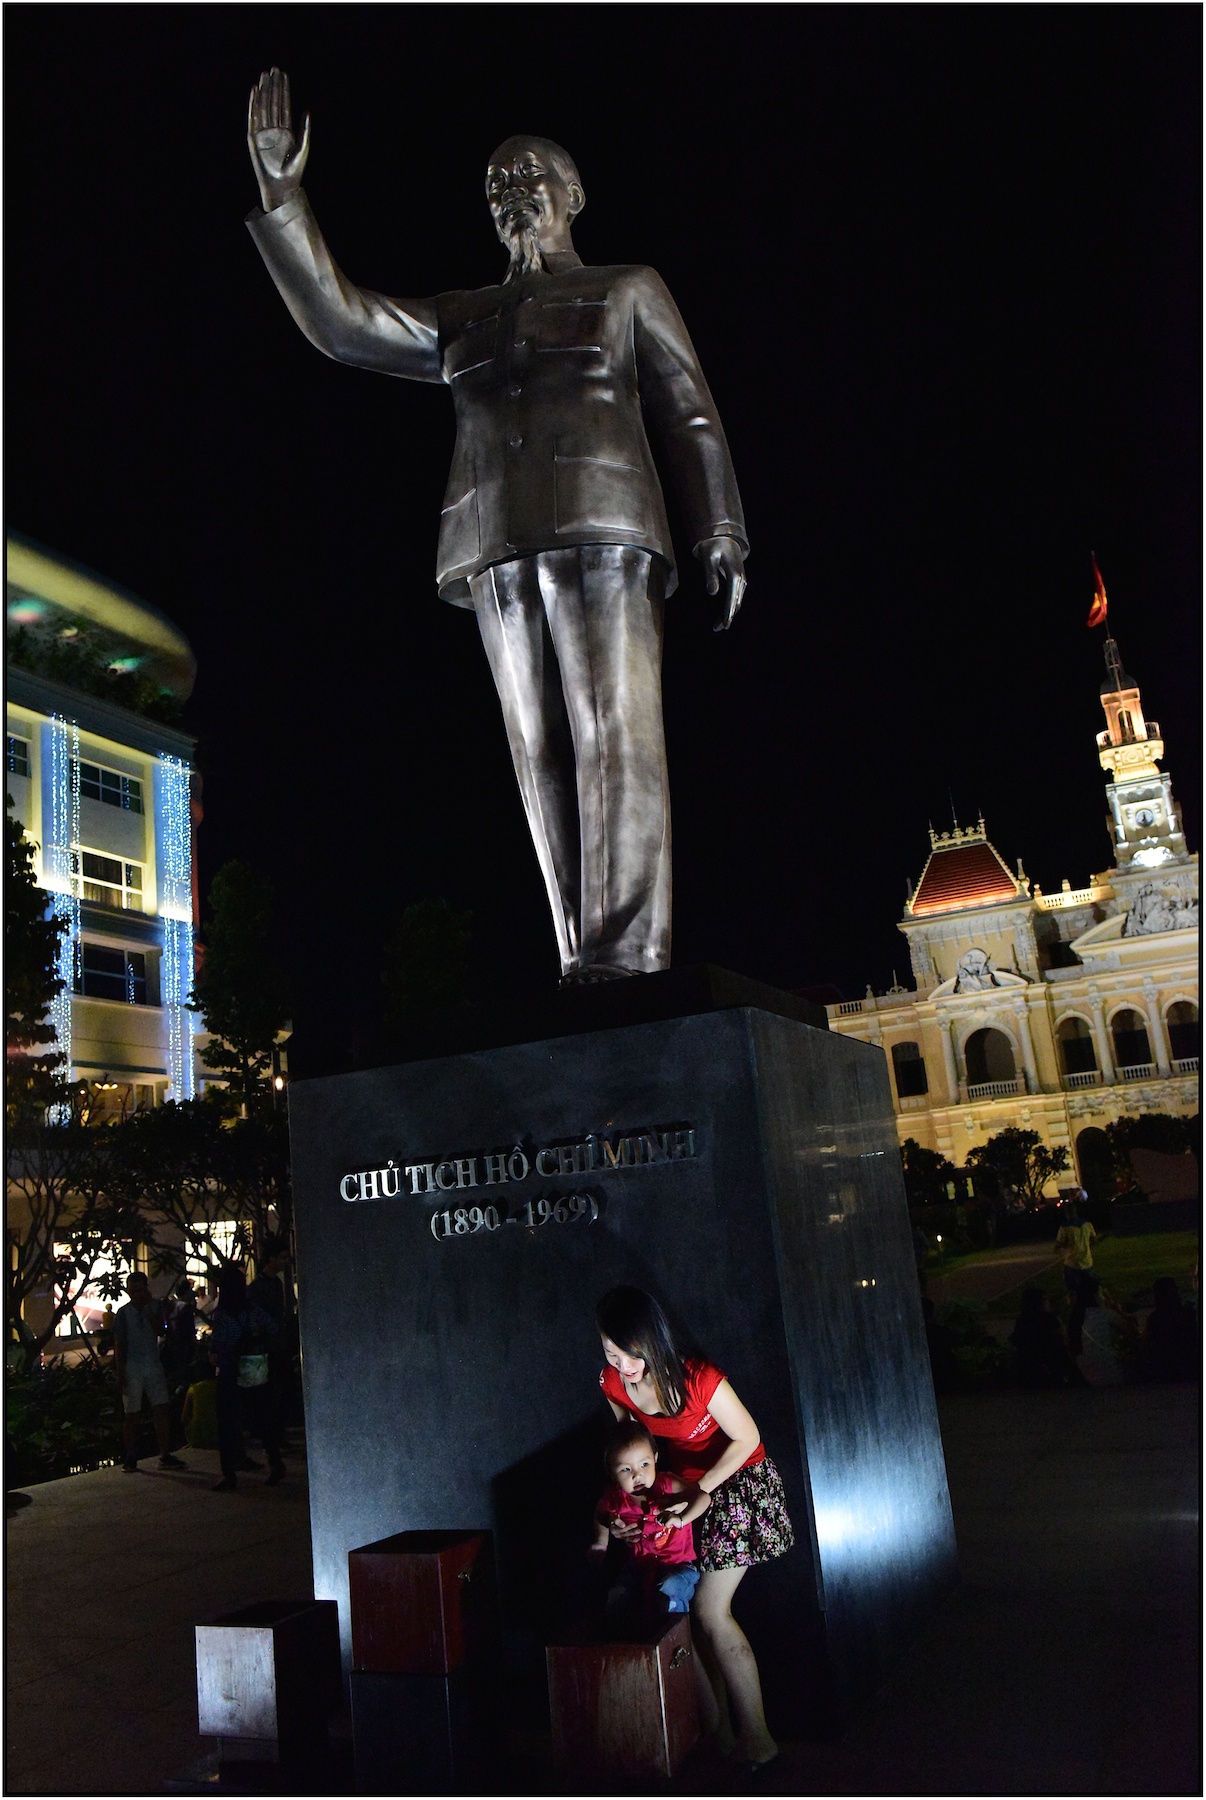 Ho Chi Minh statue and the Vietnam Communist Party Peoples Committee building (City Hall) on the right. Dec. 2015. #3061